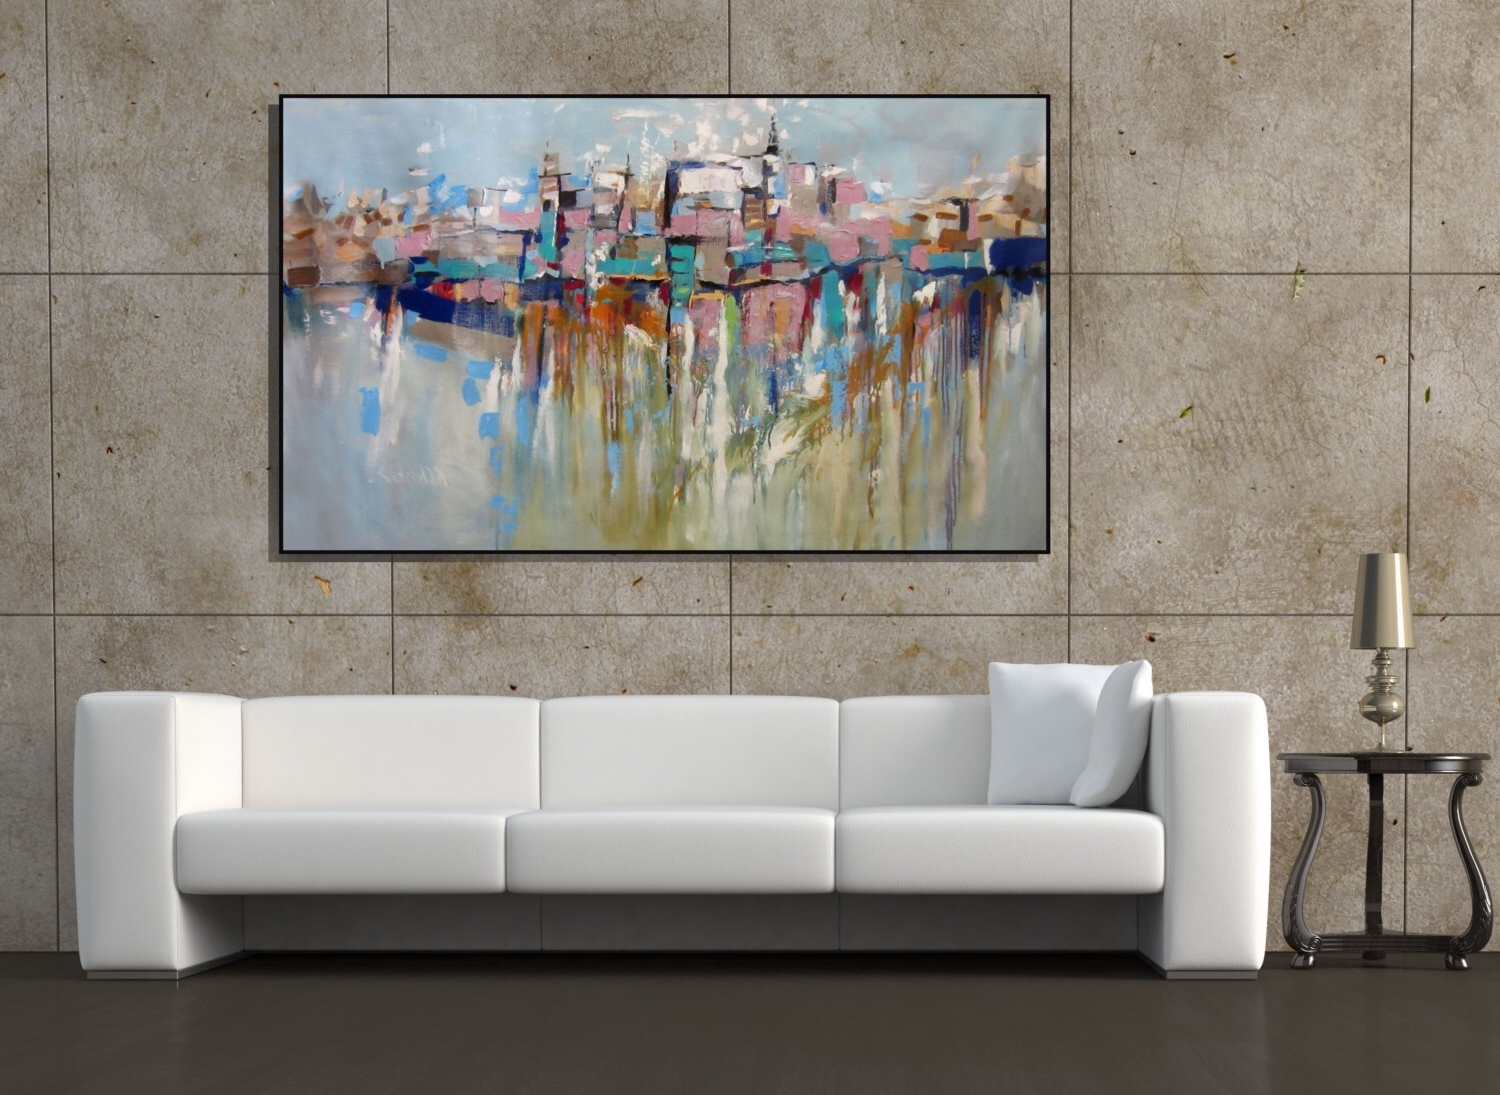 15 best large framed abstract wall art - Large wall art ideas ...